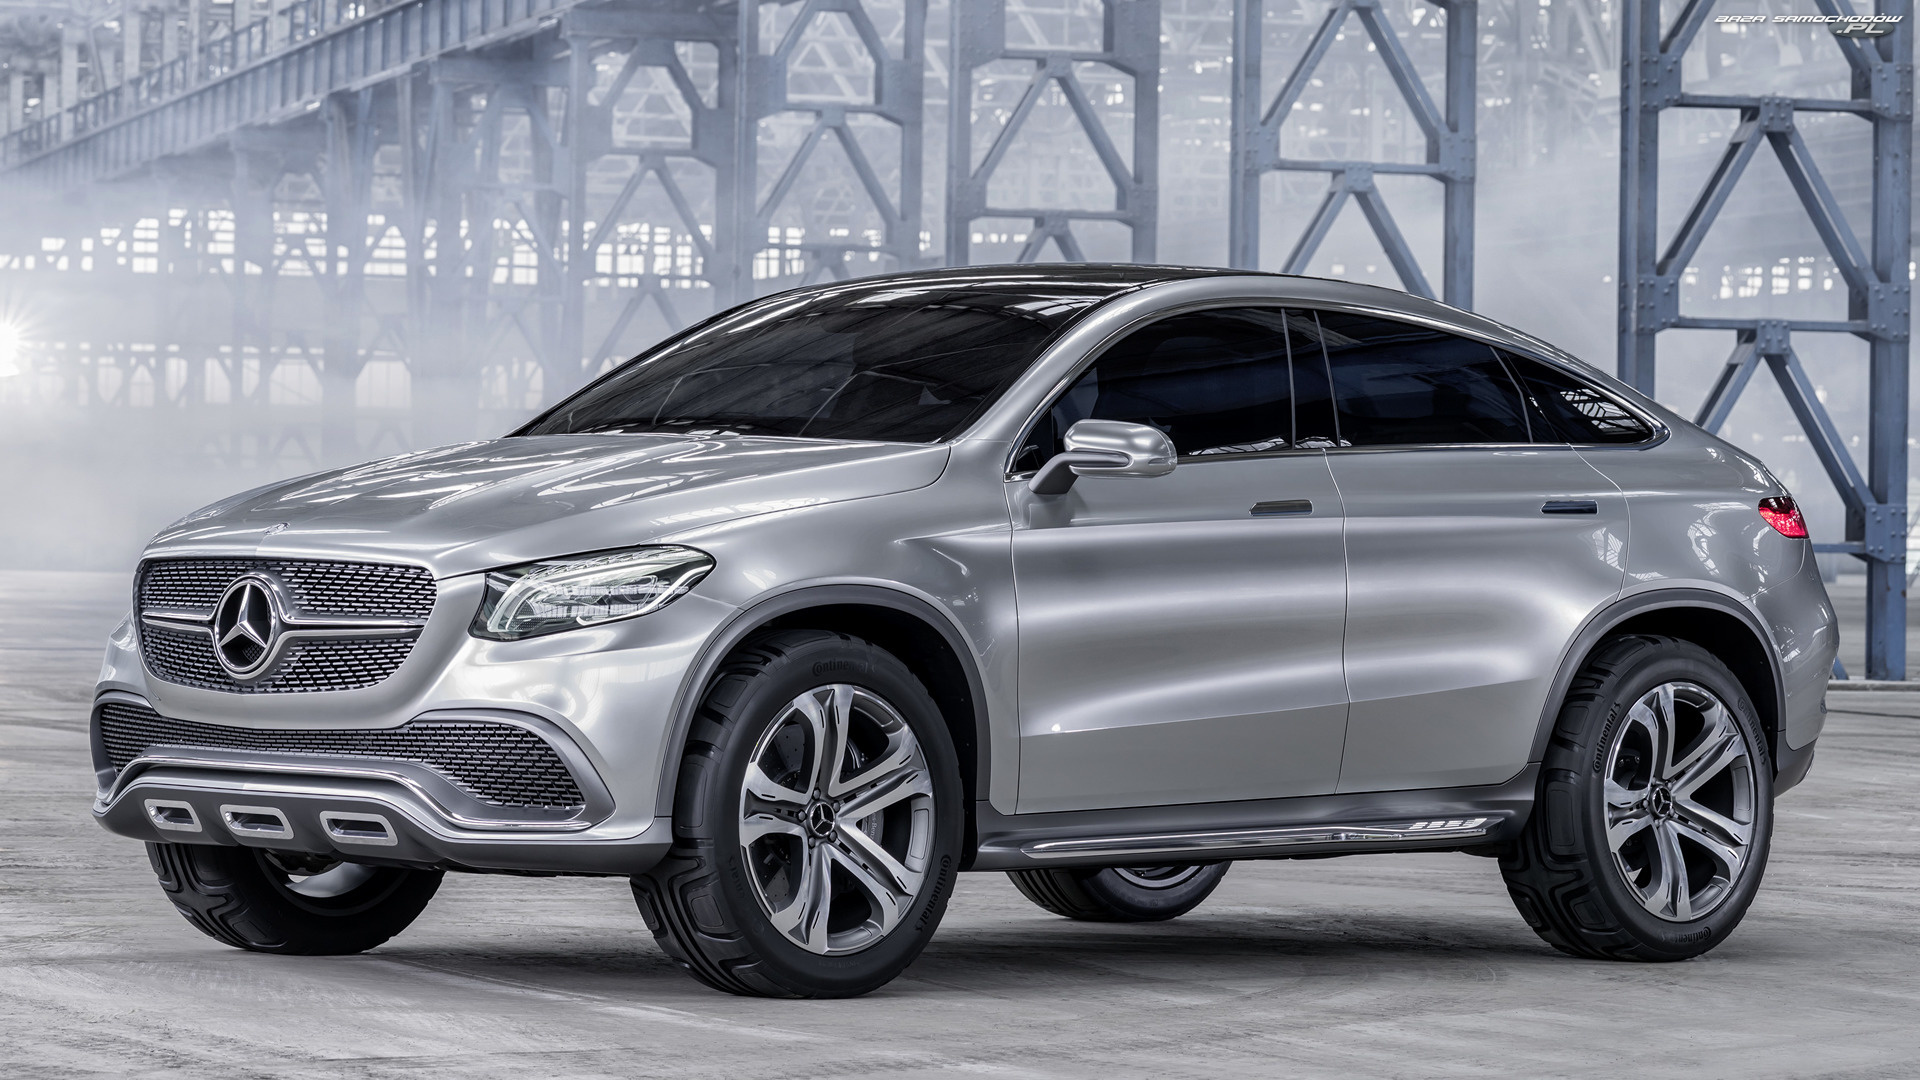 Mercedes-Benz Concept Coupe SUV, Prototyp